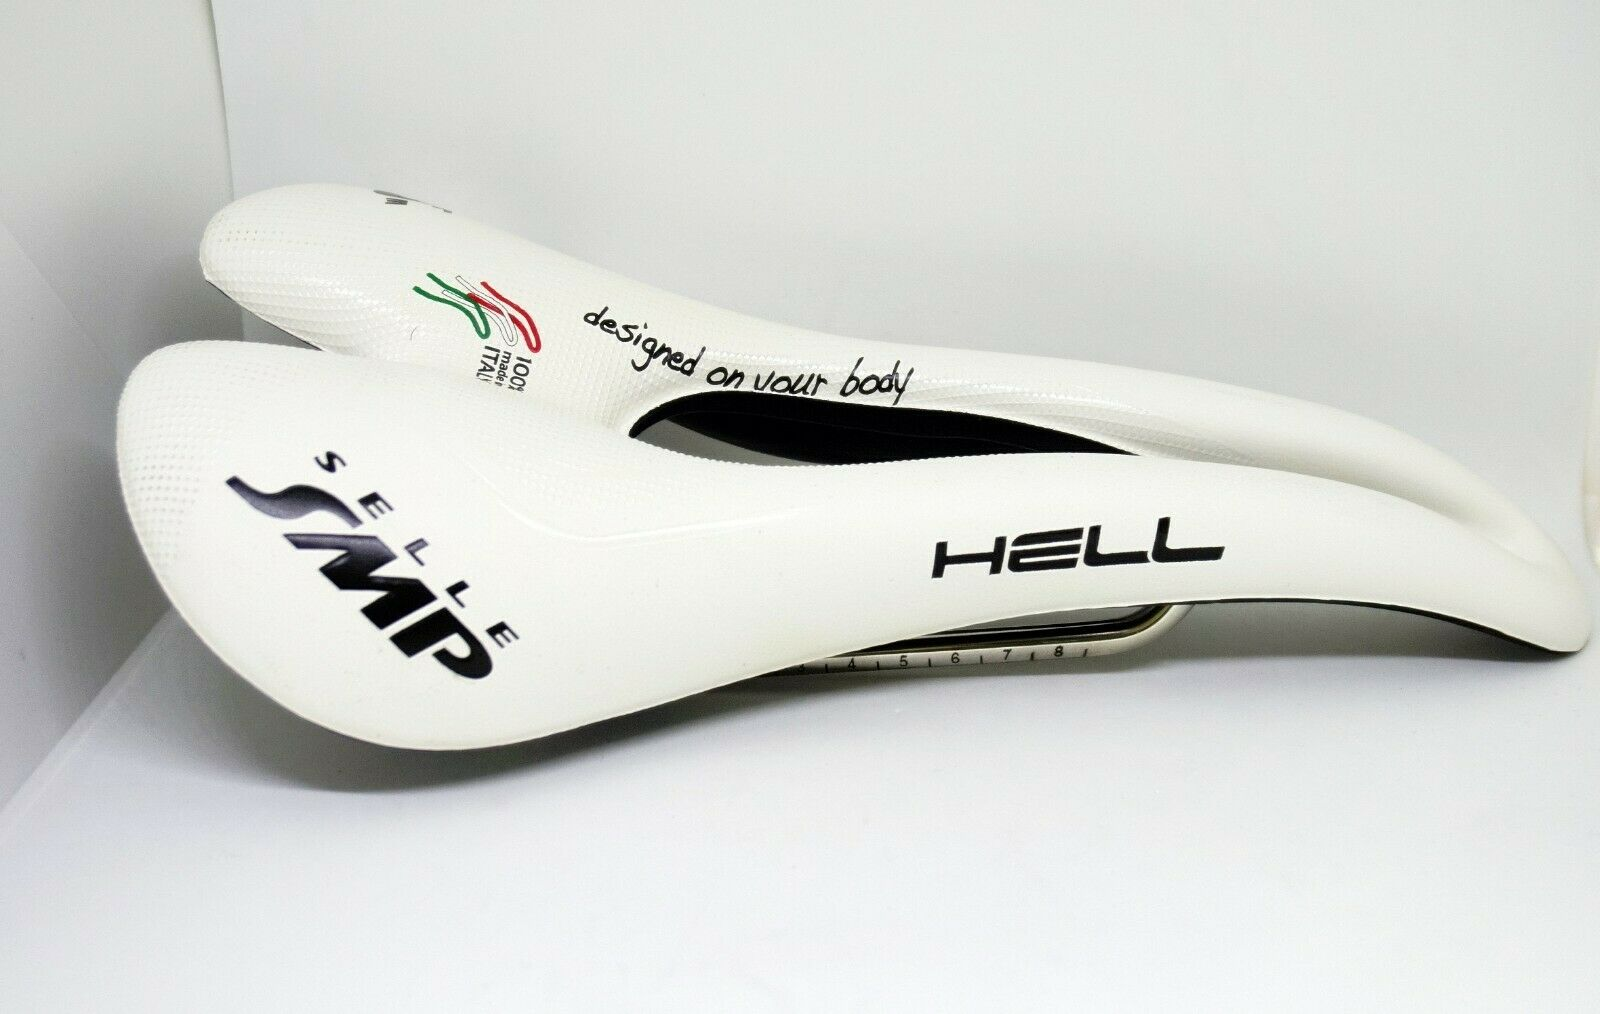 Sillin Selle SMP Infierno blancooo, 280mm X 144mm